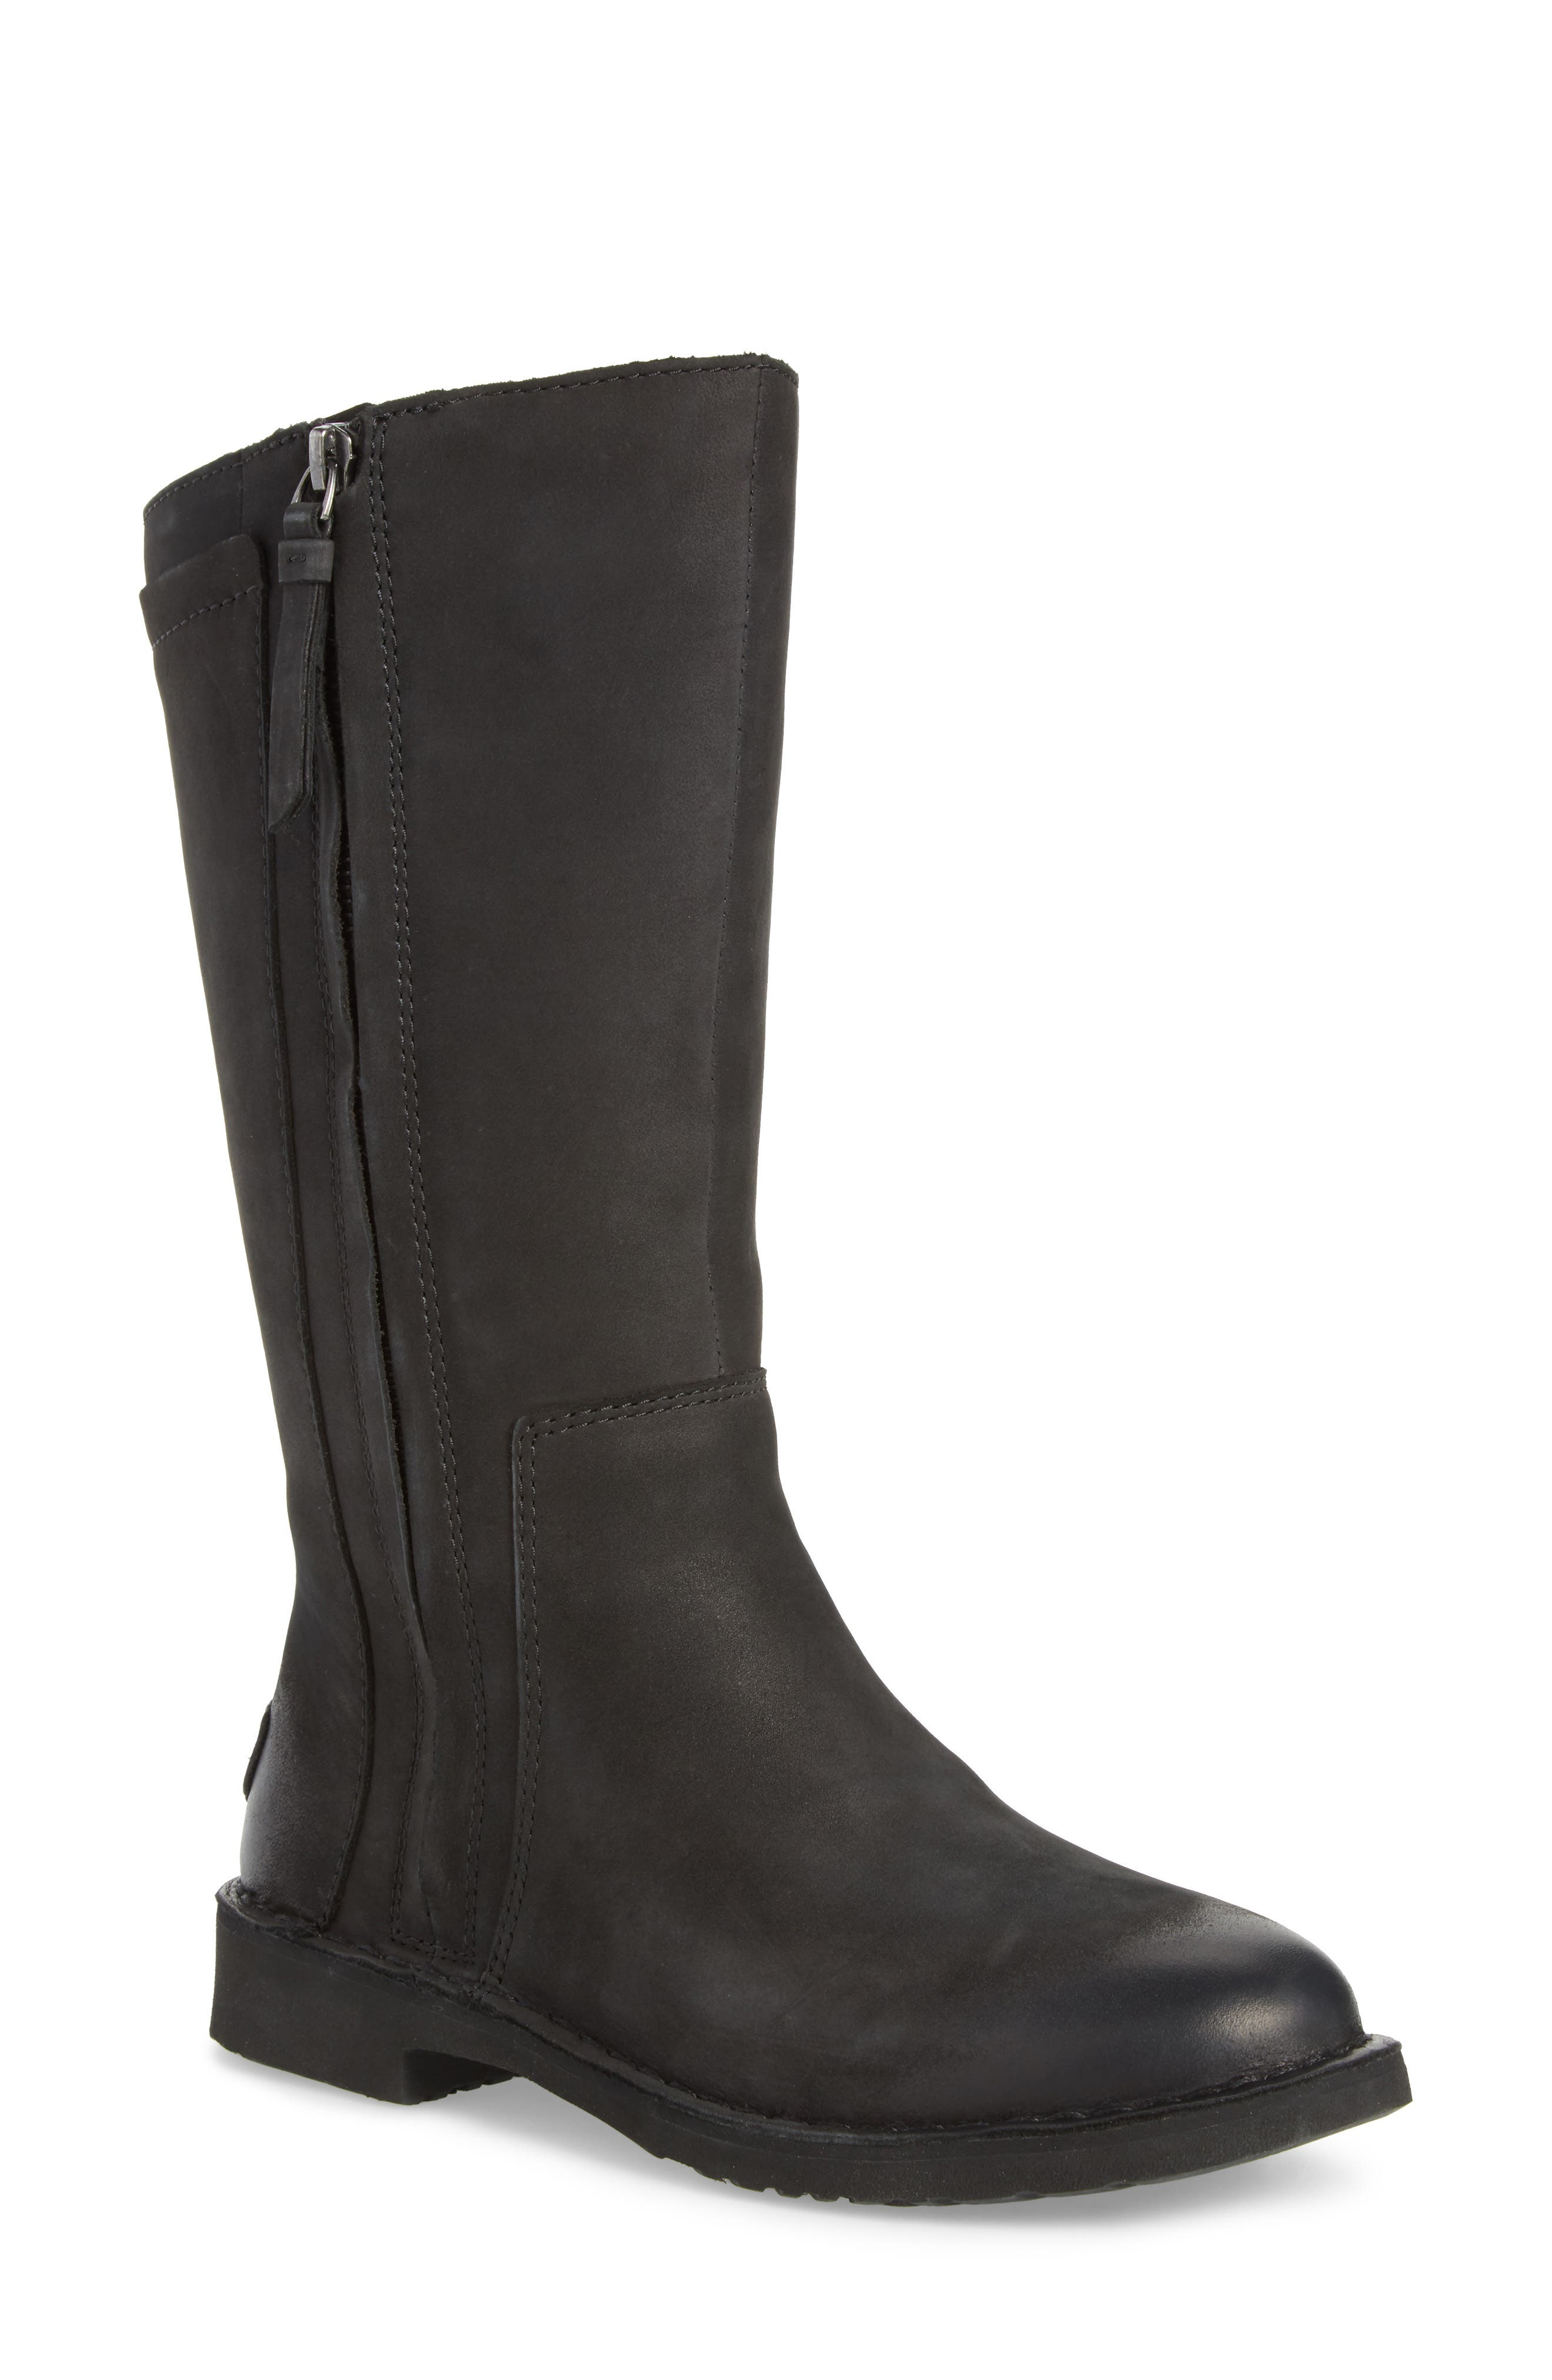 Elly Boot,                         Main,                         color, Black Nubuck Leather